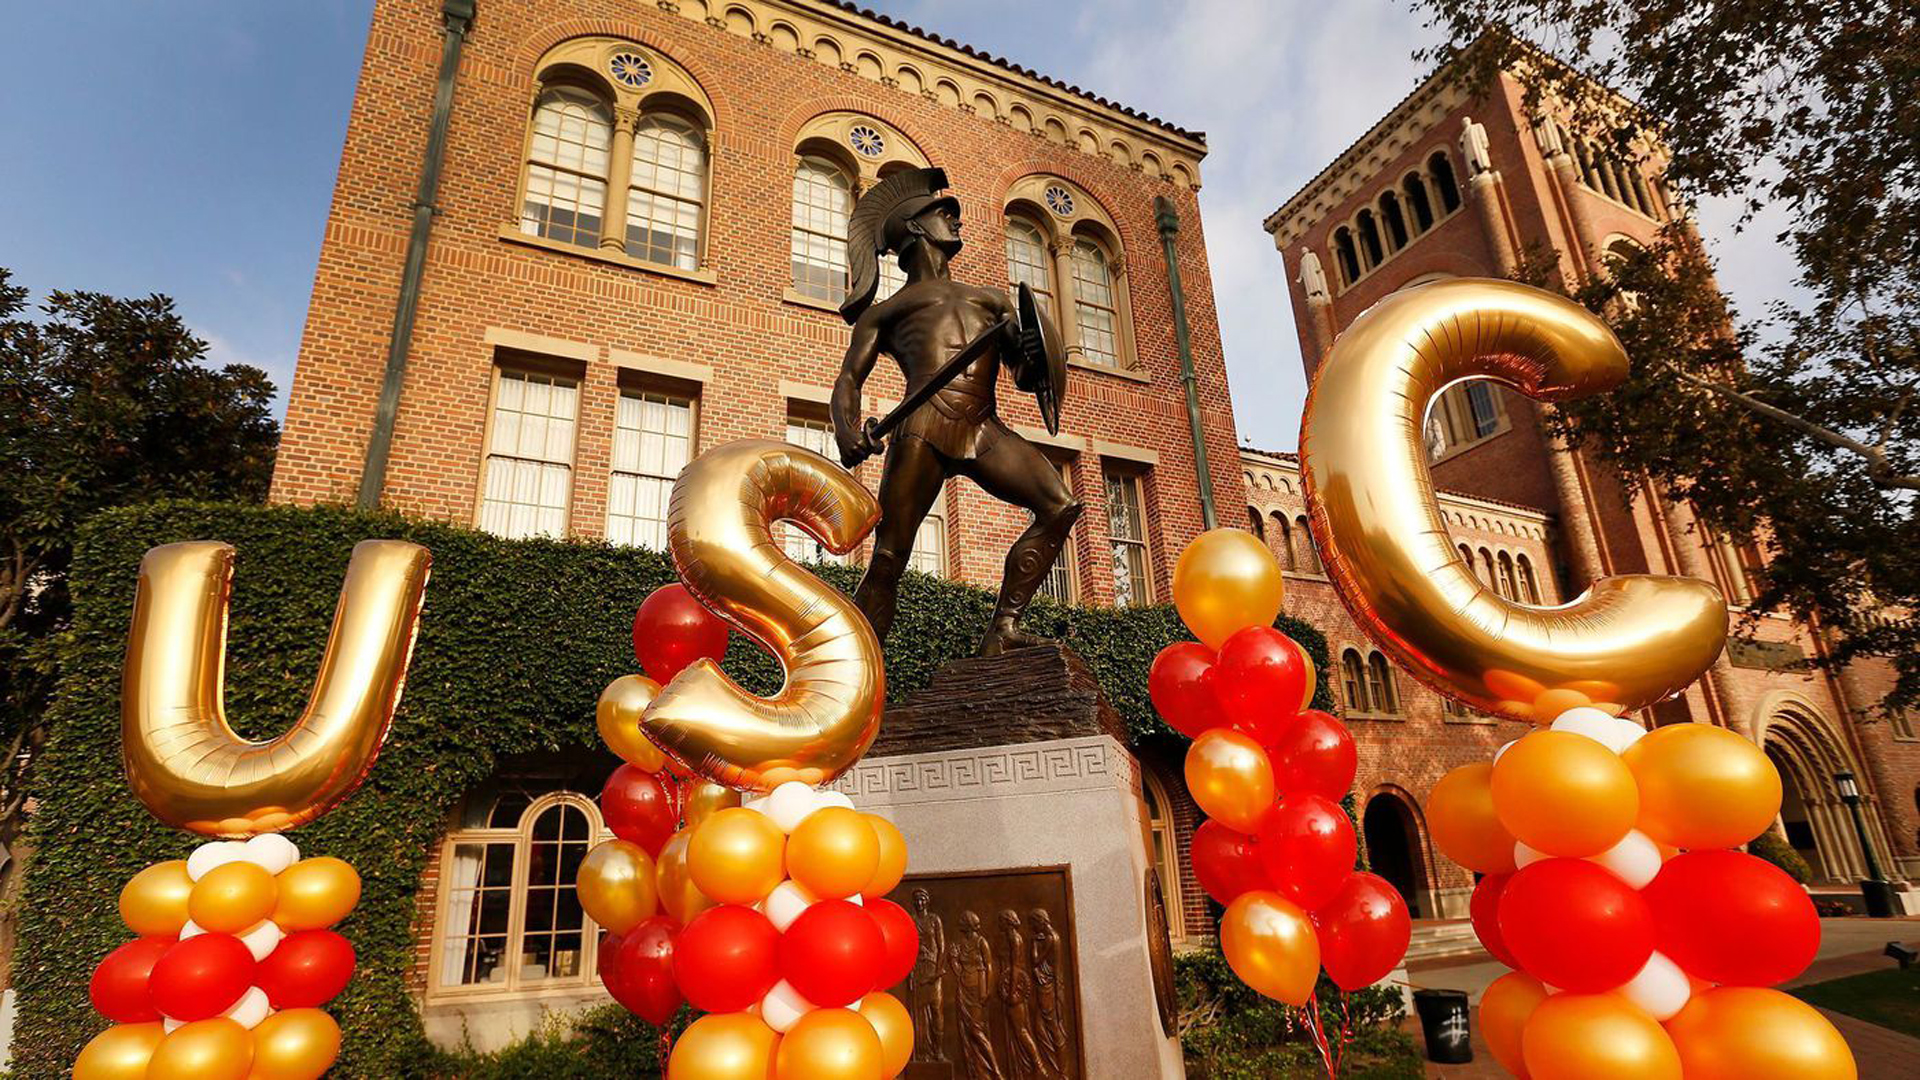 The statue of Tommy Trojan on the USC campus is seen in a file photo. (Al Seib / Los Angeles Times)